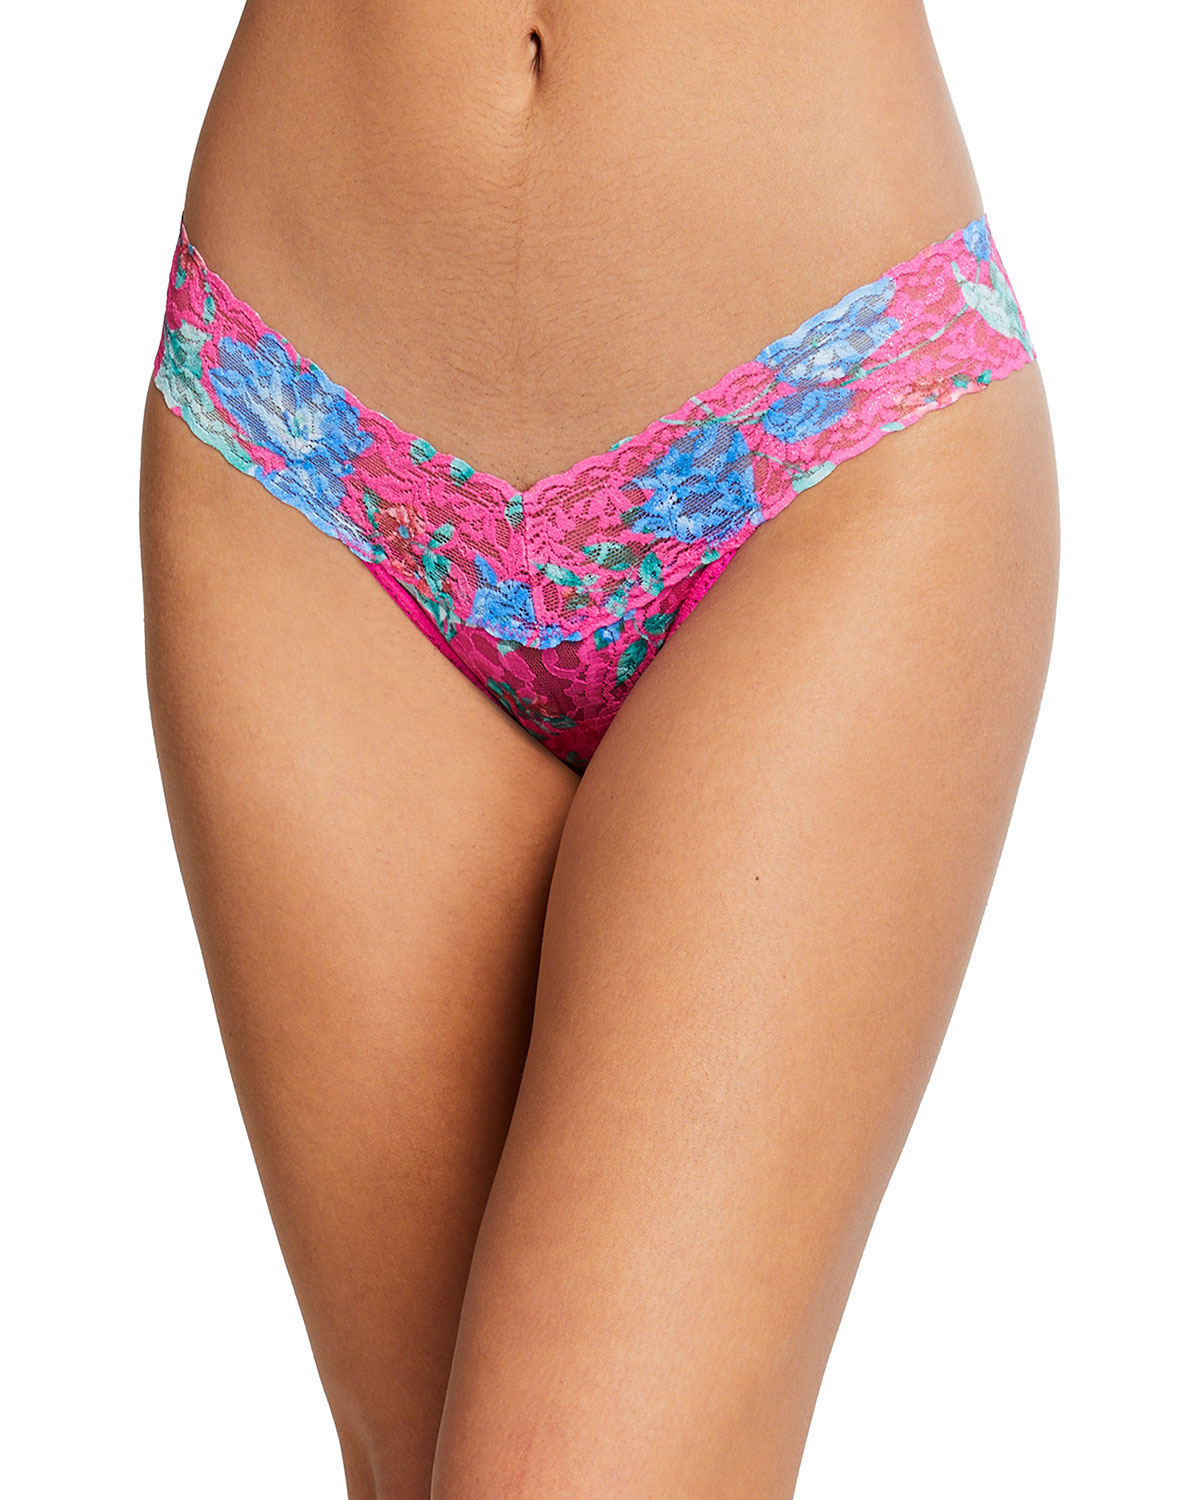 Hanky Panky ELECTRIC GARDEN LOW-RISE SIGNATURE LACE THONG